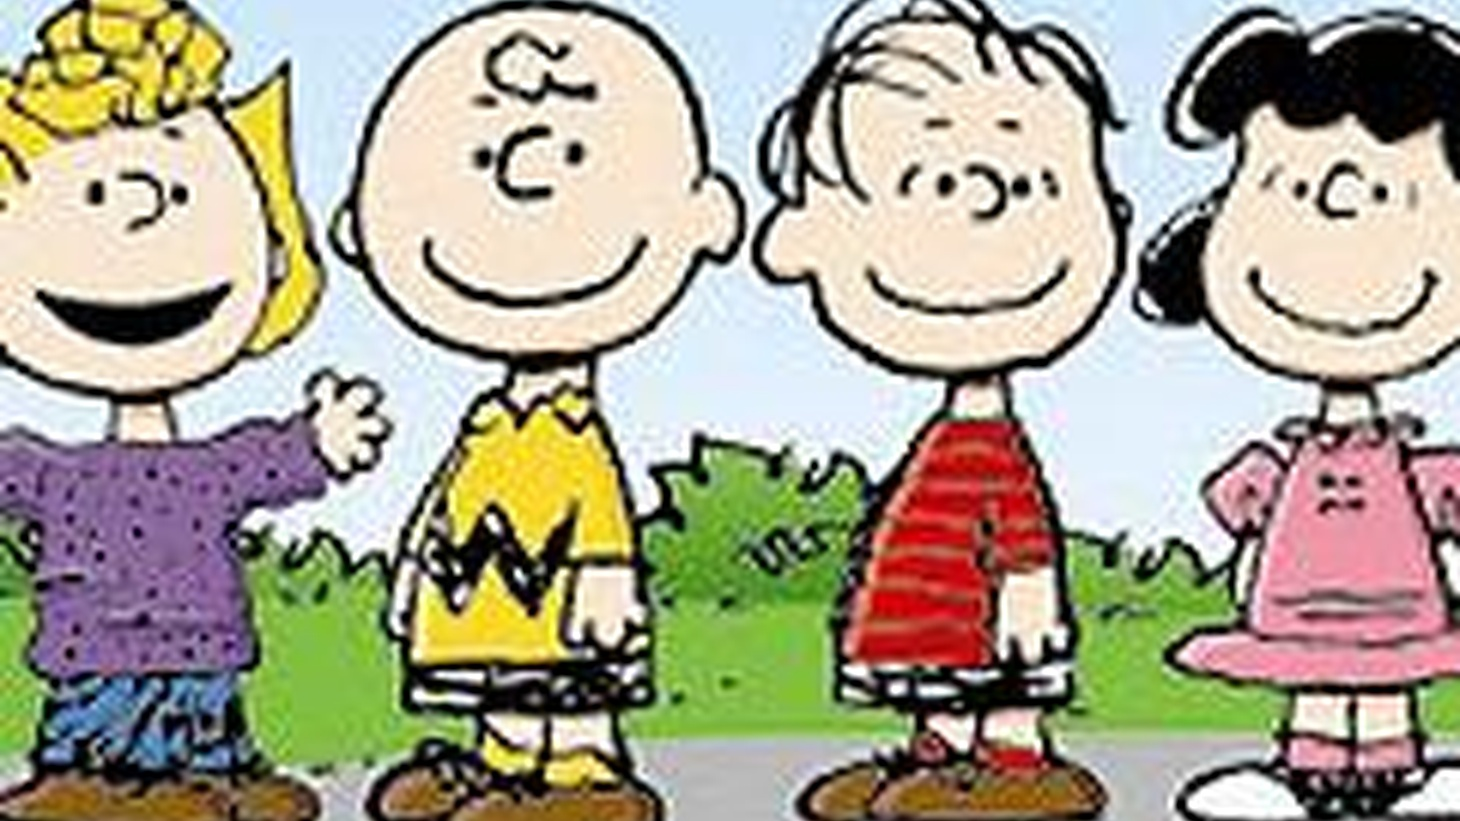 Charles Schulz's biographer, David Michaelis, on some surprising secrets about the creator of Peanuts. Also, the enduring influence of Jack Kerouac's On the Road. Plus, a designer weighs in on changing the look of interstate highway signs.